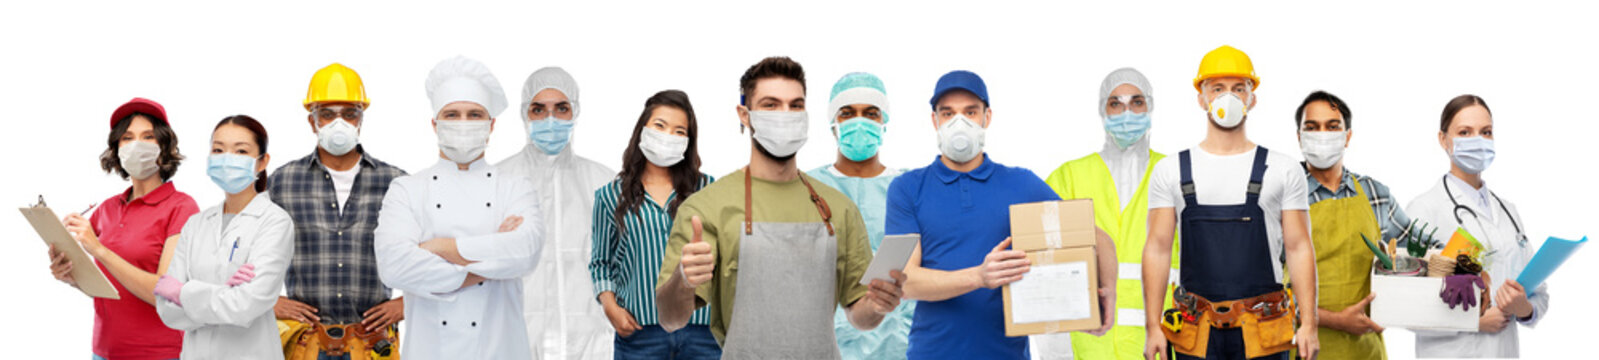 job, health and pandemic concept - people of different professions wearing face protective masks or respirators for protection from virus disease over white background